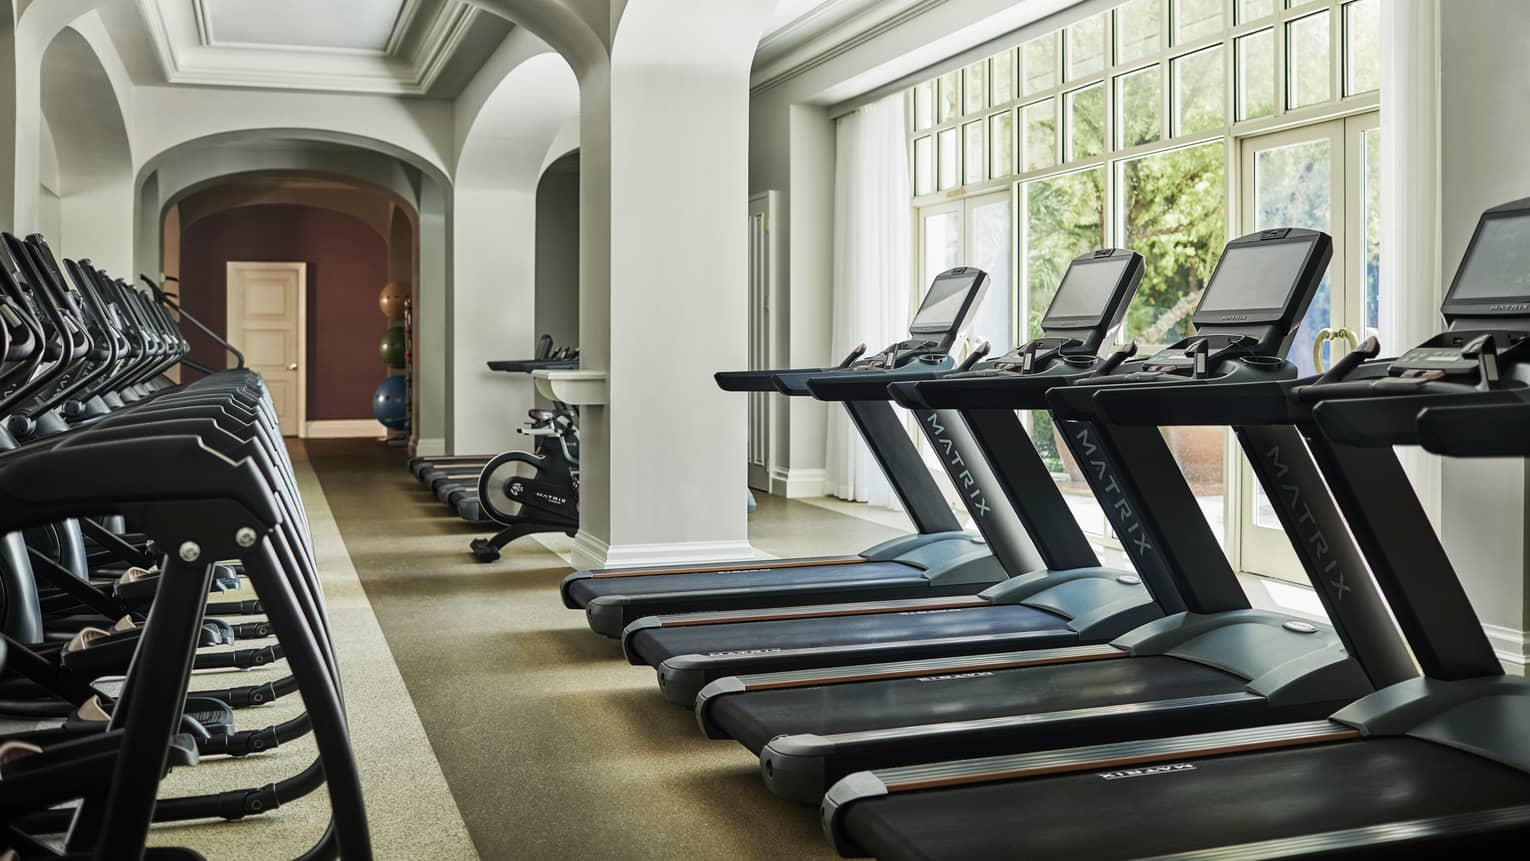 Rows of treadmills under sunny windows in Fitness Centre